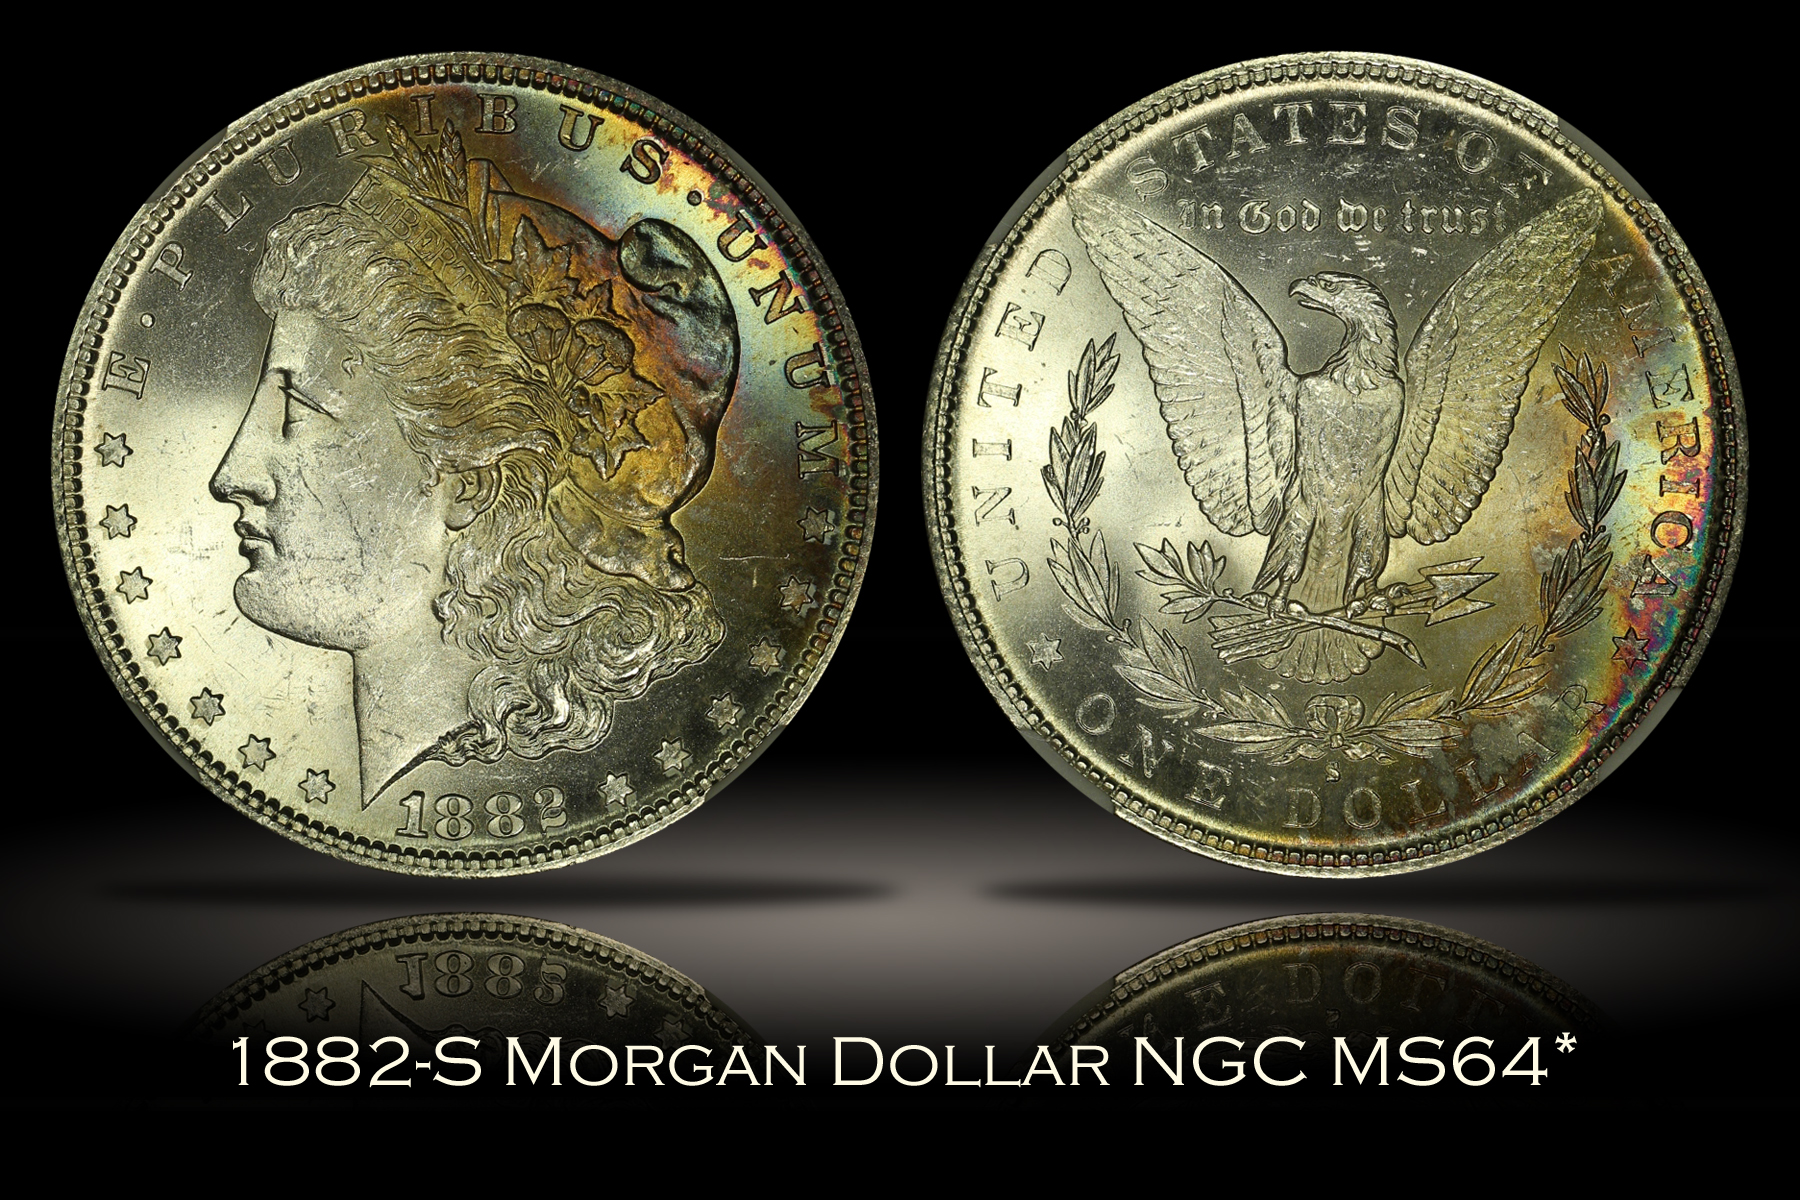 1882-S Morgan Dollar NGC MS64*